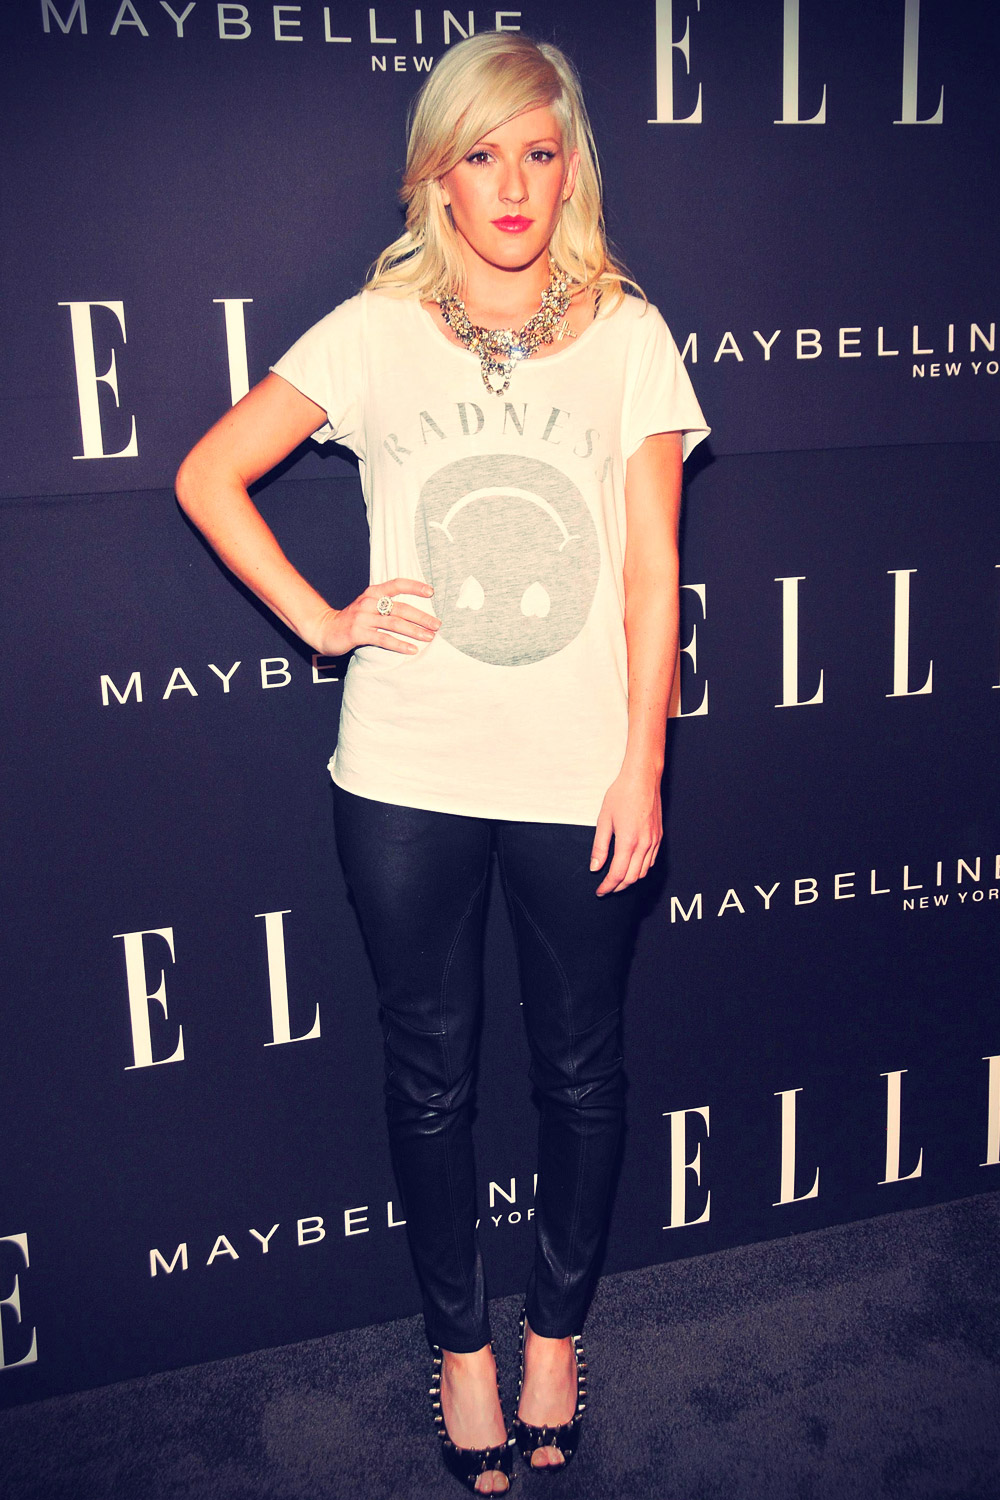 Ellie Goulding at 2nd Annual ELLE Fashion Next Presentation